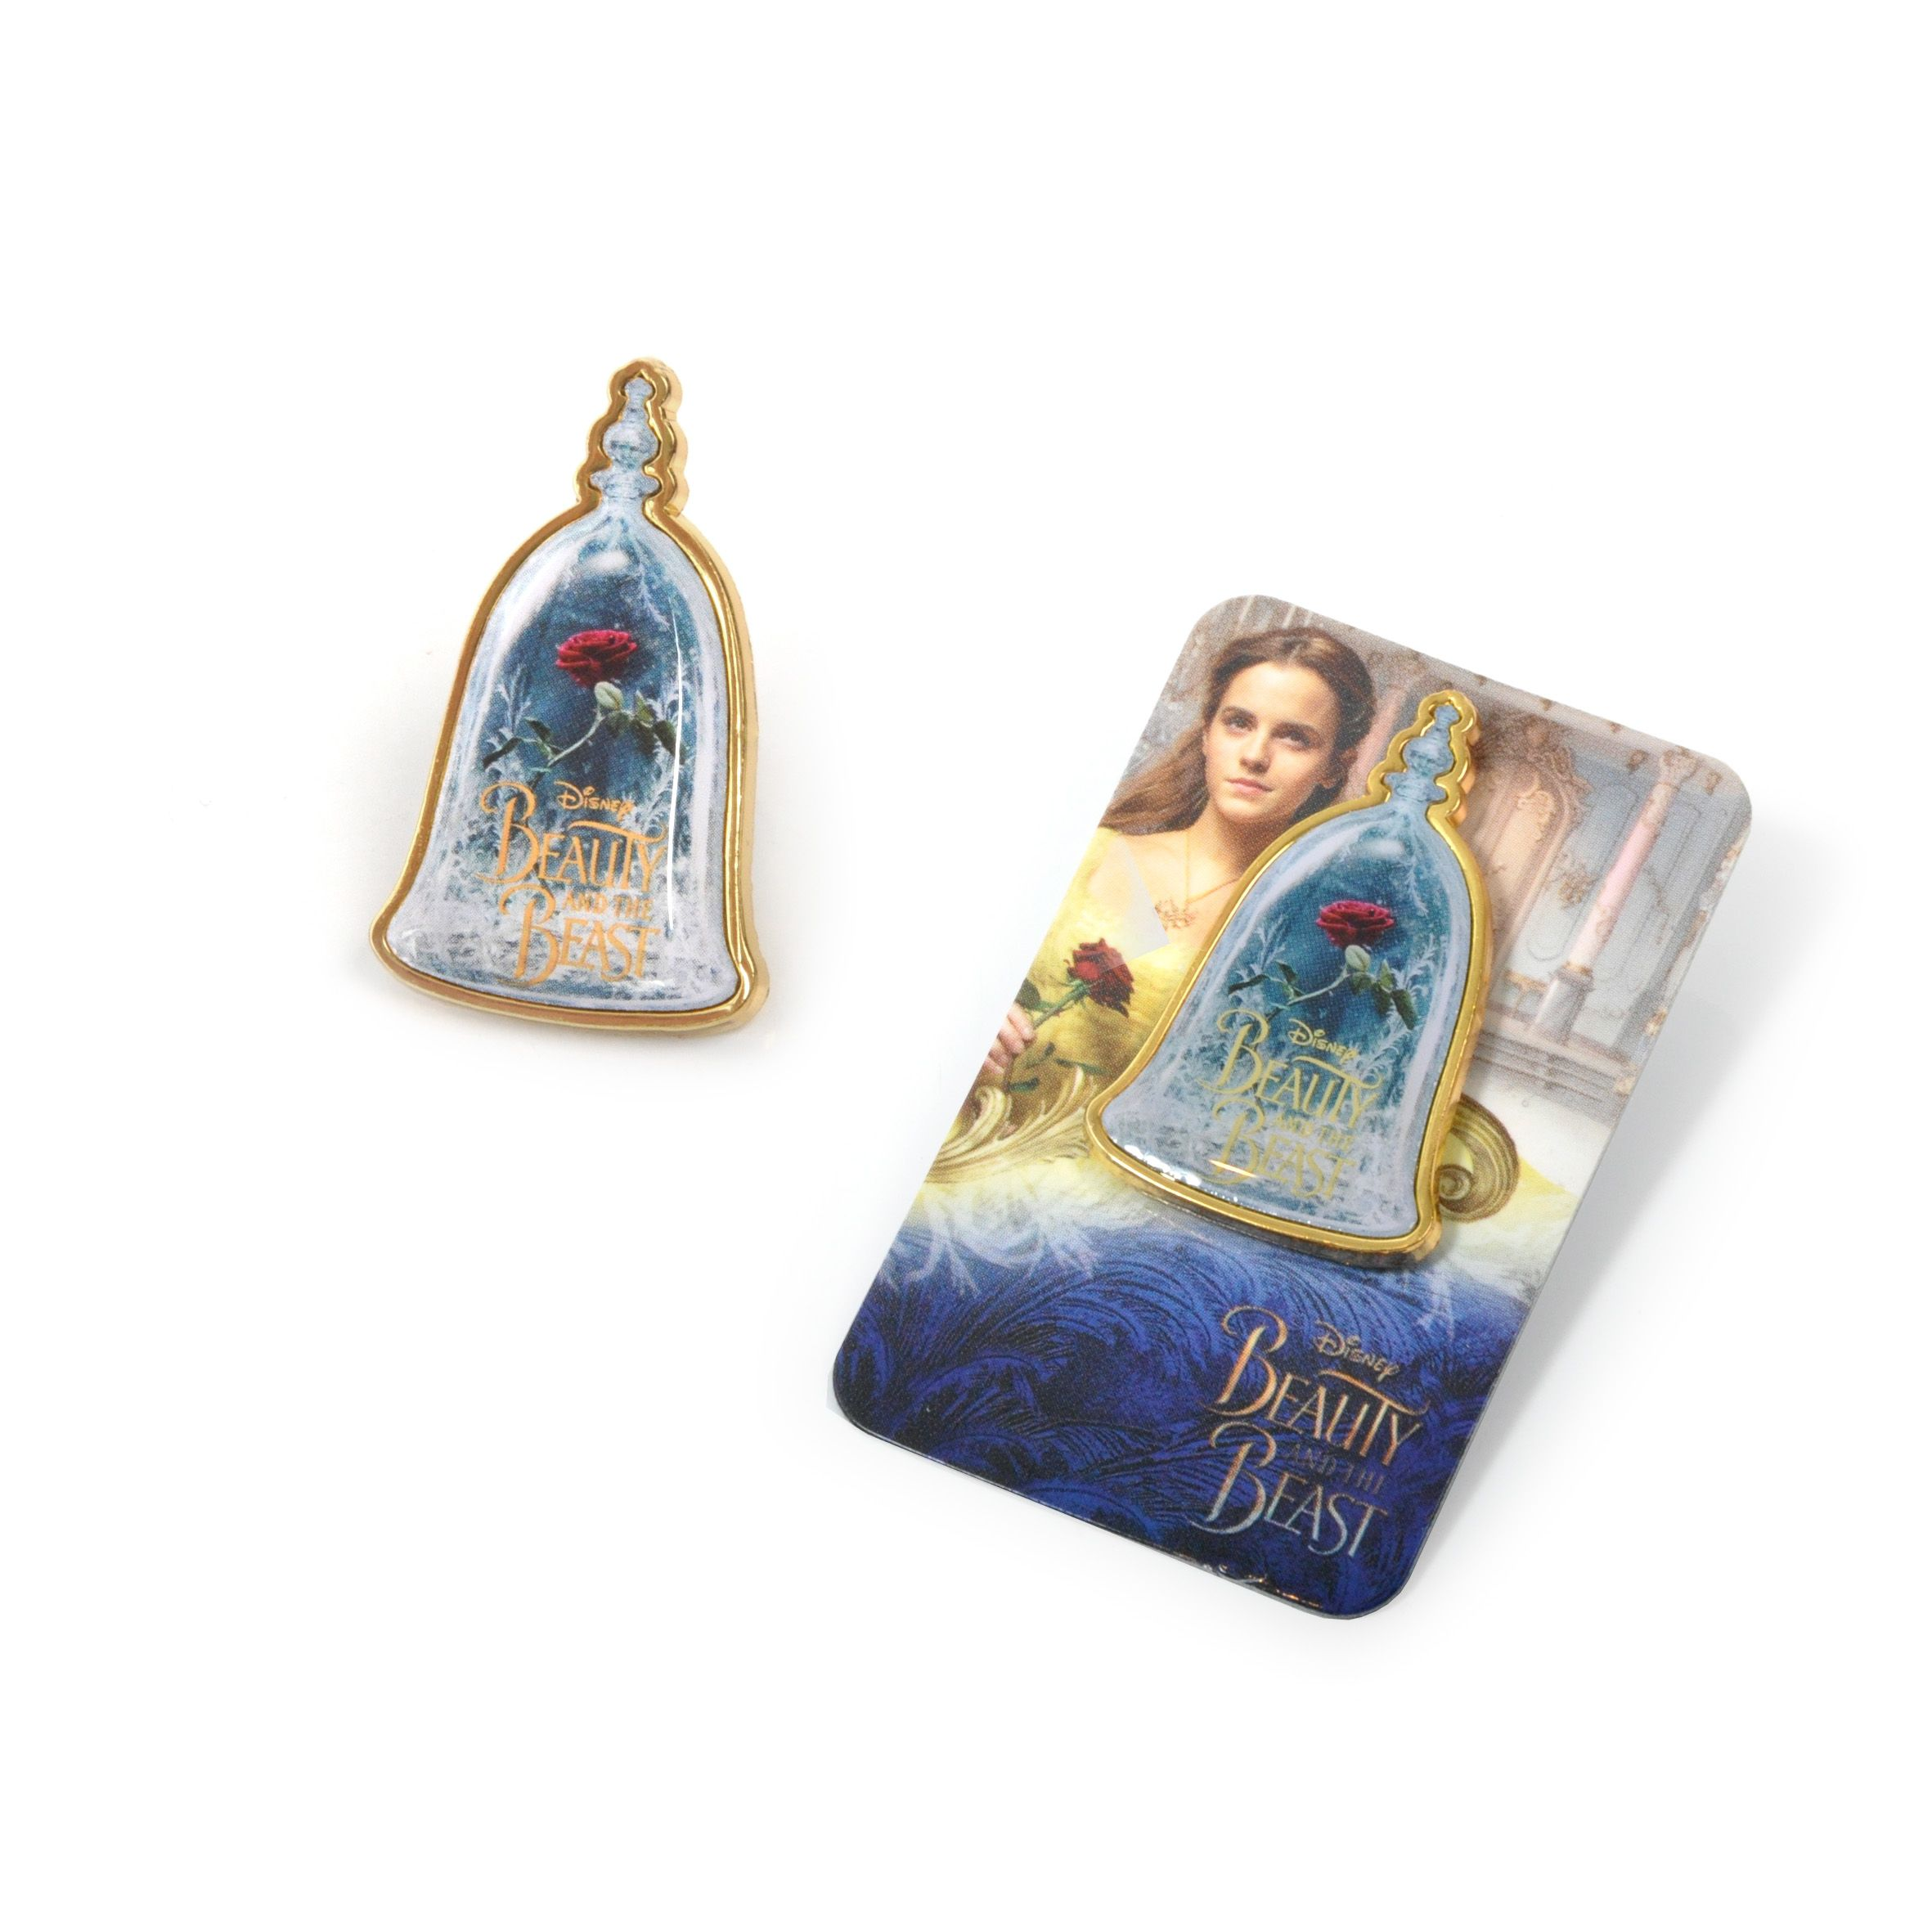 Beauty and the beast live action pin badge by ABOX